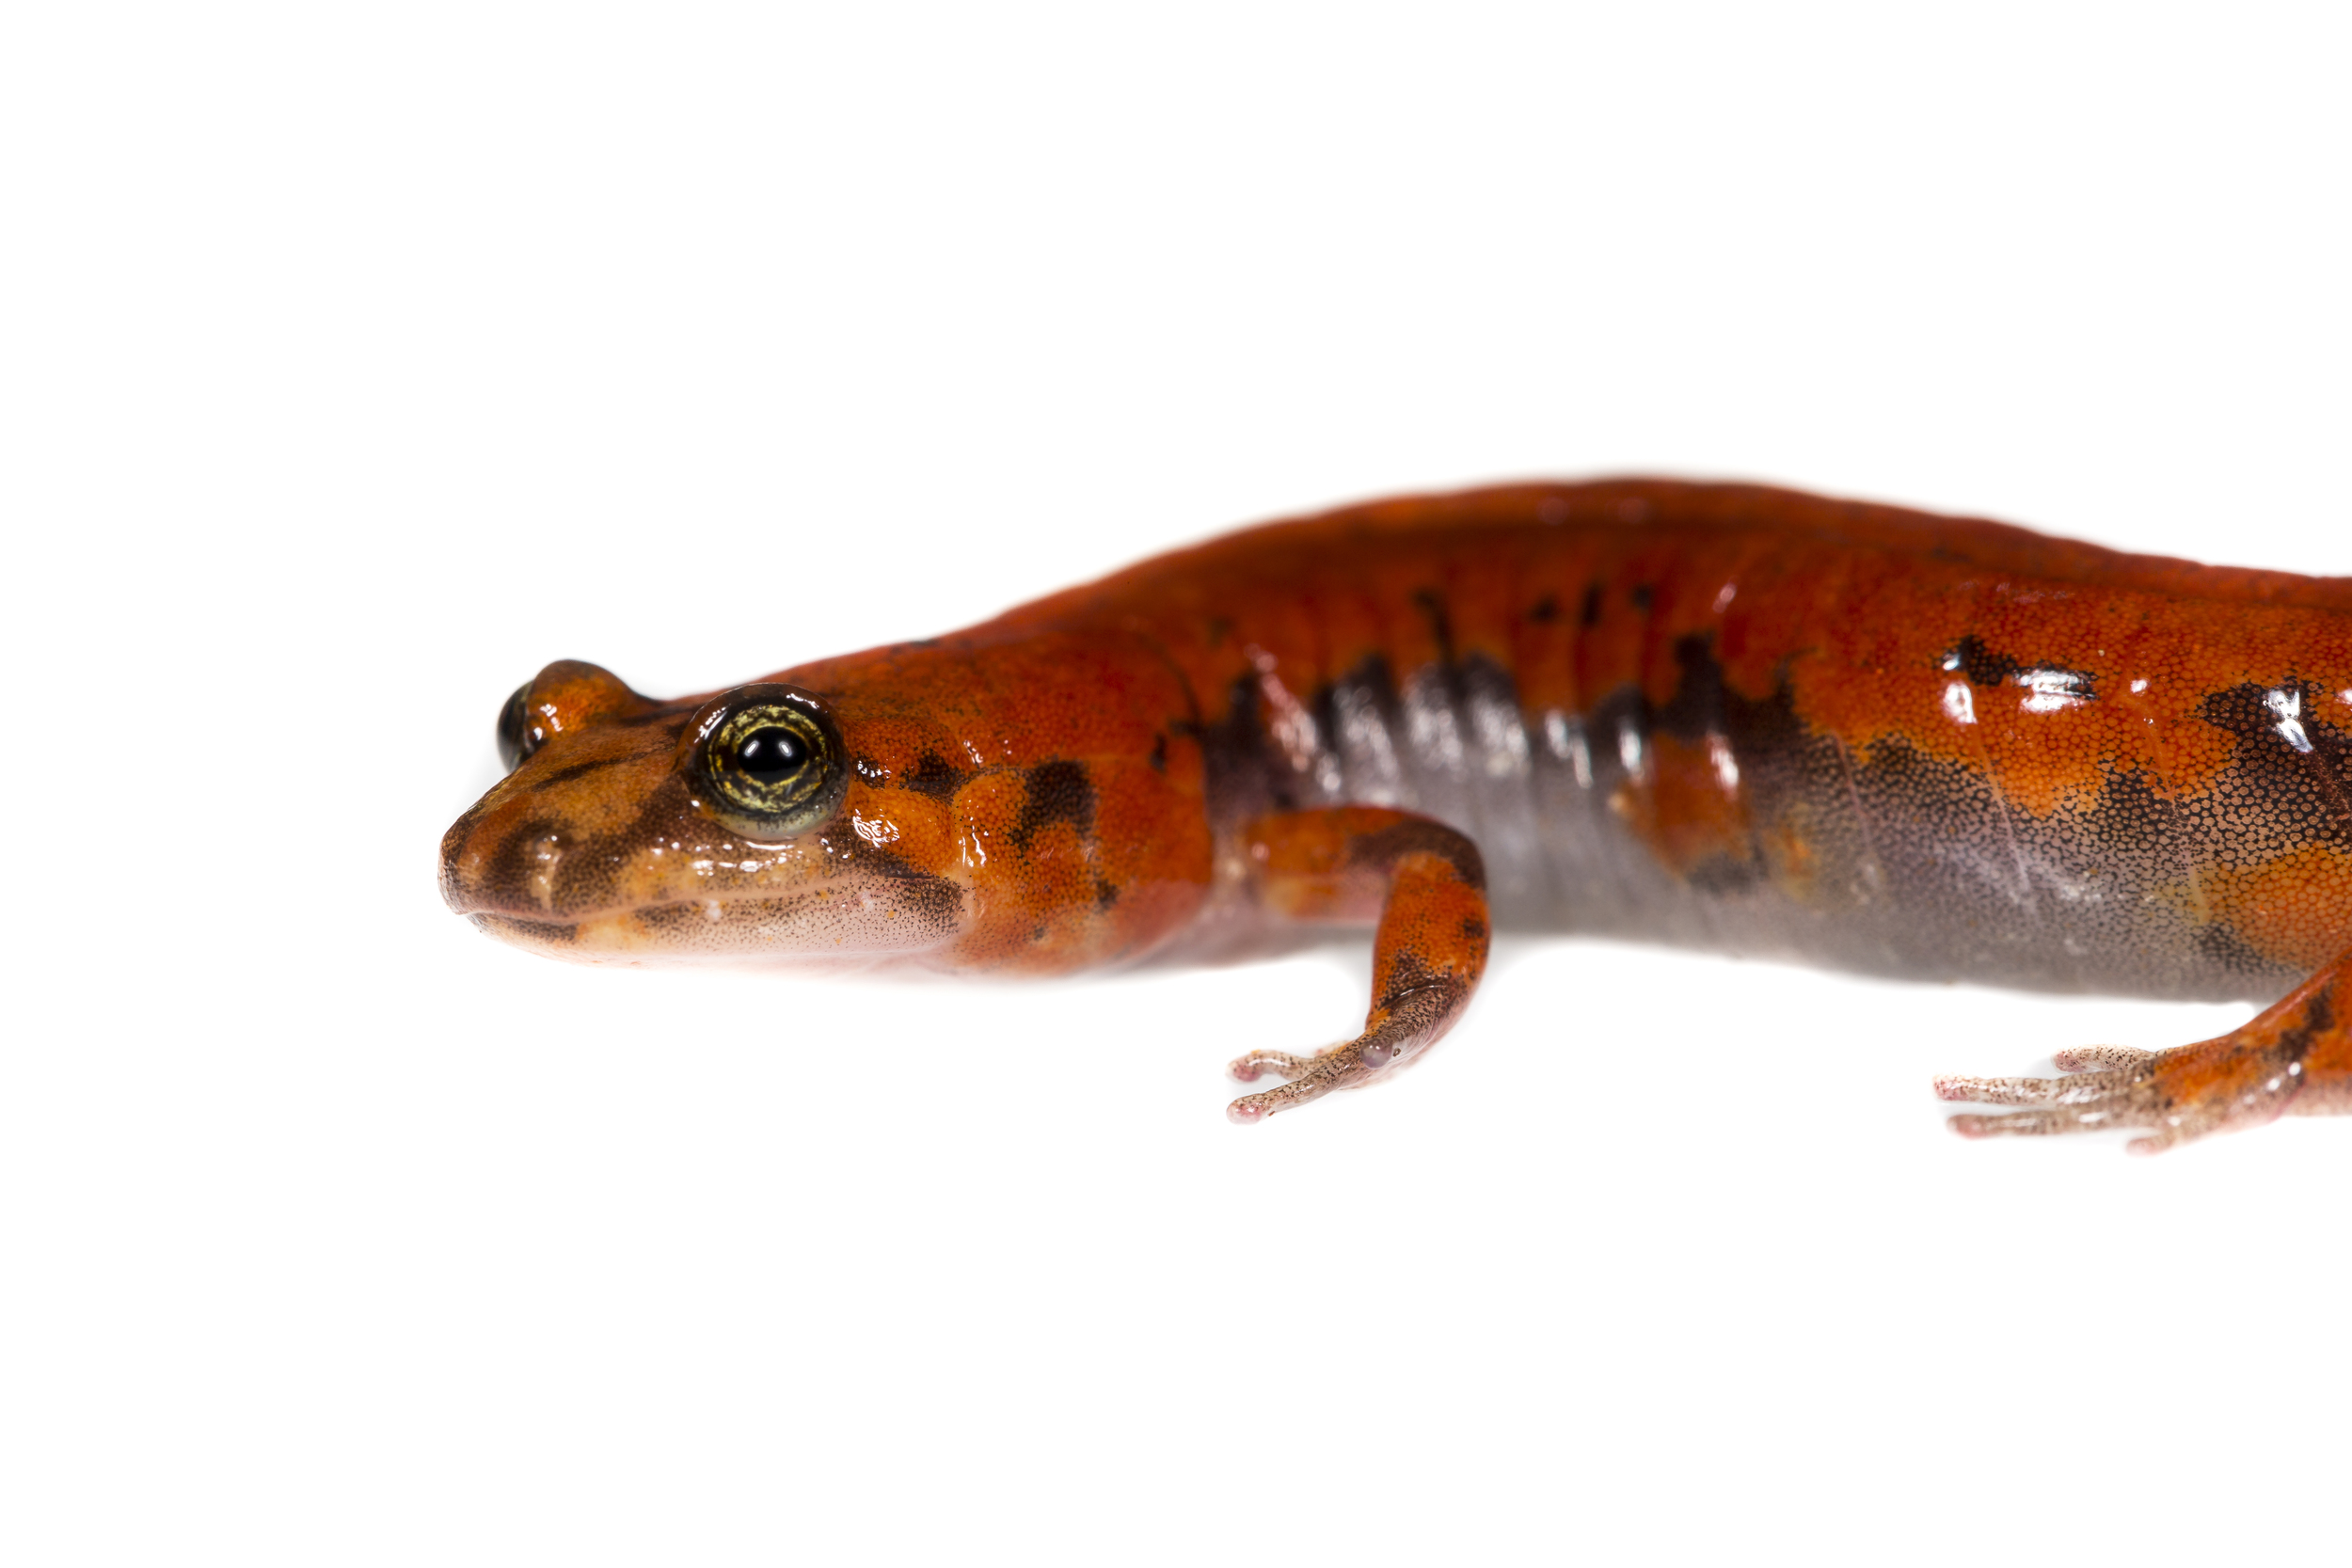 Salamanders can be difficult to identify due to their similarities as well as various color morphs. We sent images of this individual to two salamander experts and both came back with a different possible ID. One being the Allegheny Mountain Dusky, and the other being an Ocoee Salamander.